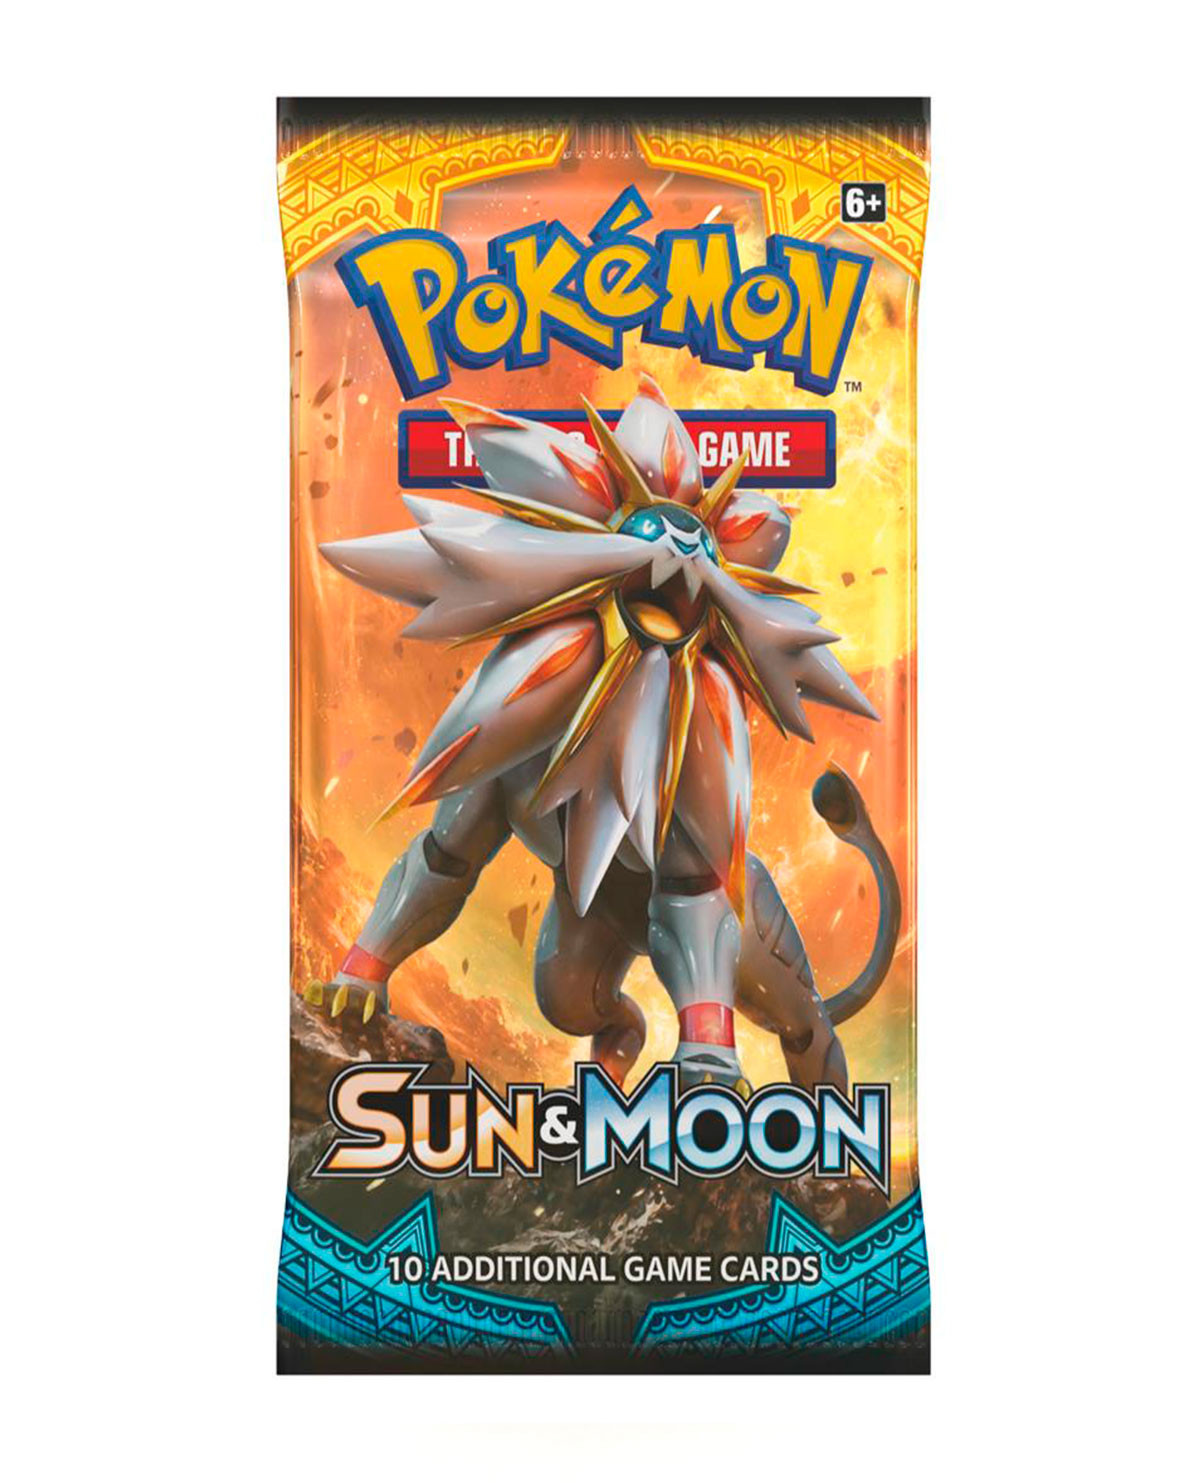 SOBRE POKEMON TRADING CARD GAME SUN AND MOON